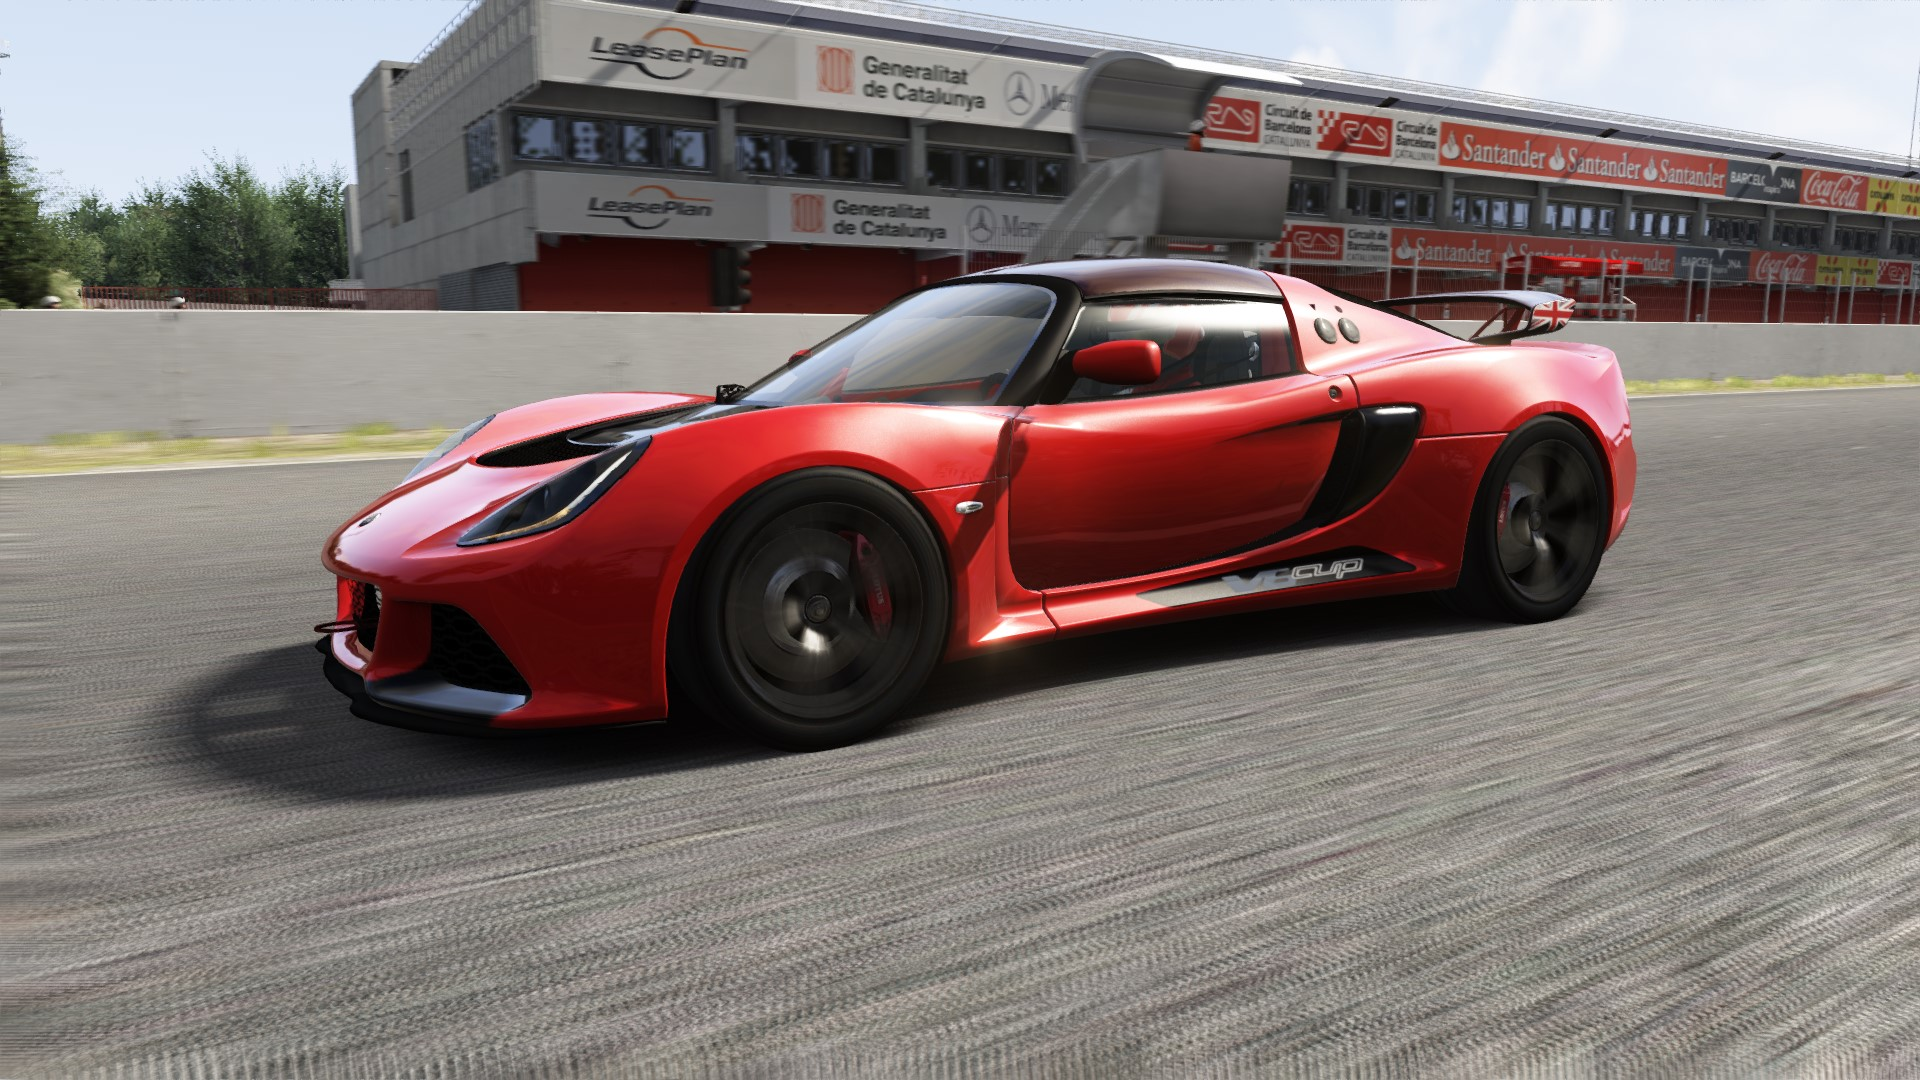 Screenshot_lotus_exige_v6_cup_ks_barcelona_29-9-117-17-9-12.jpg